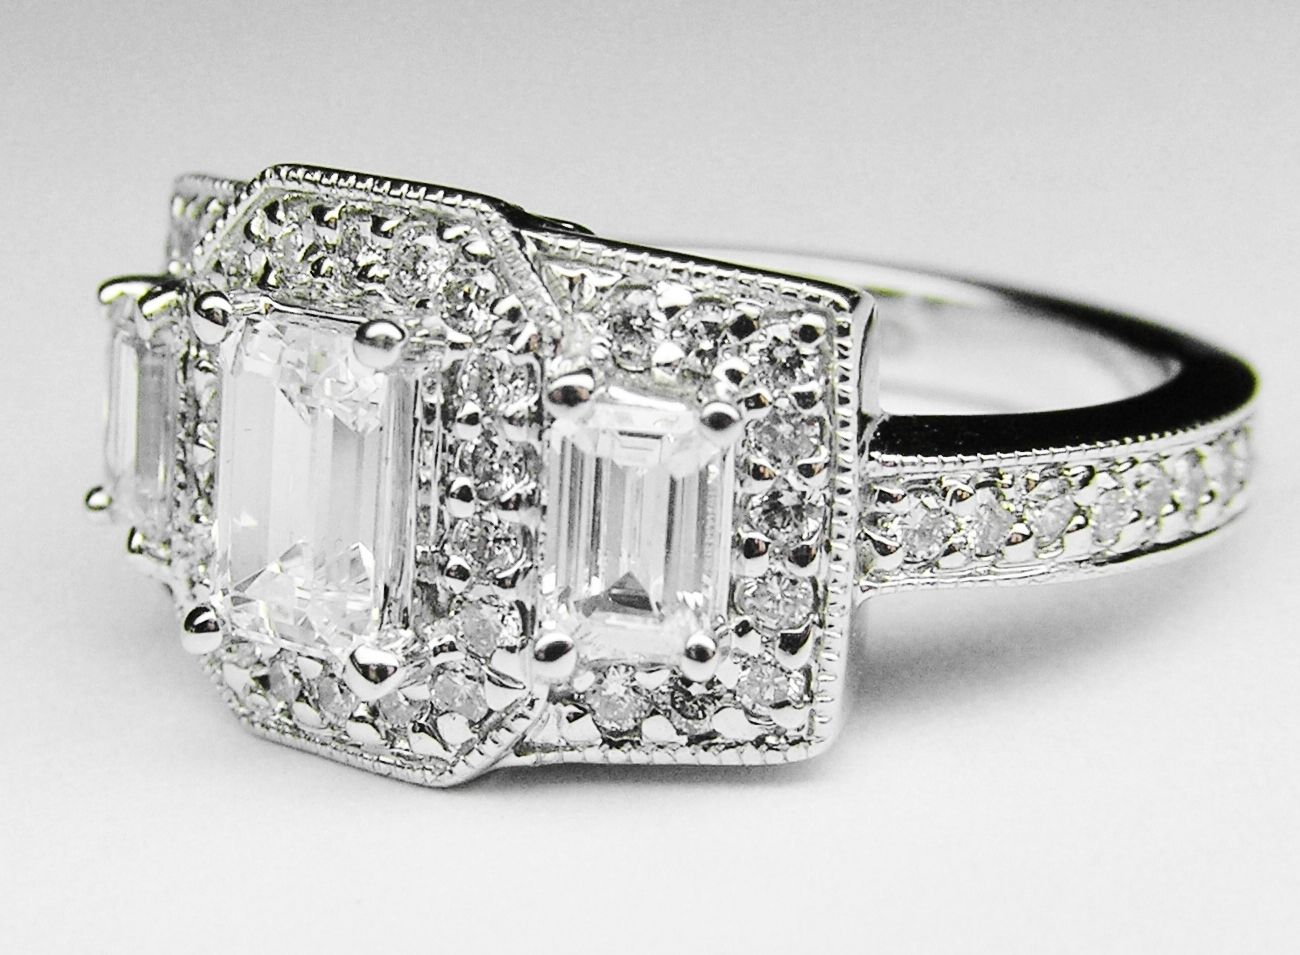 Vintage 3 Stone Diamond Ring Settings